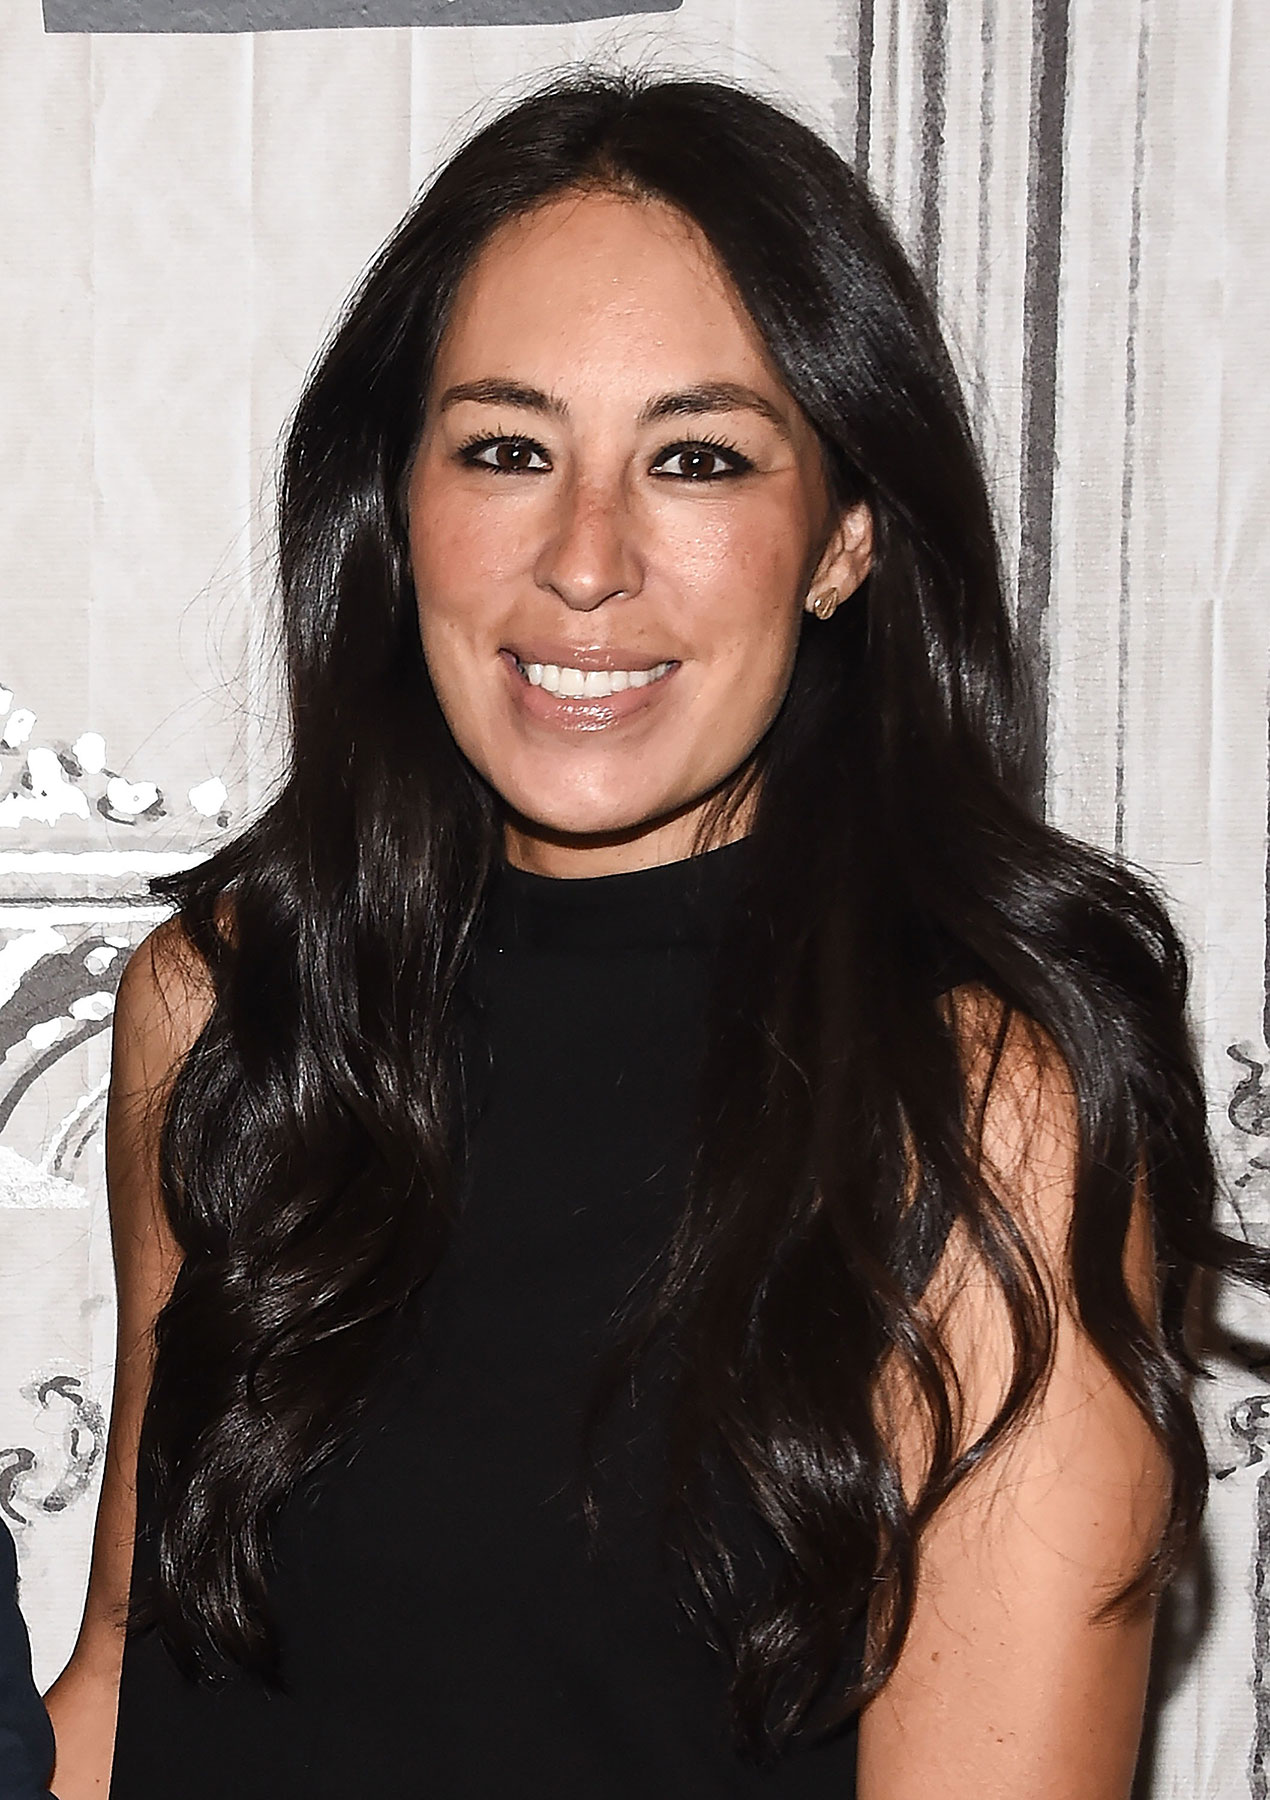 Joanna Gaines Just Posted About These Adorable Mini Succulents on Instagram—Here's Where to Get Them